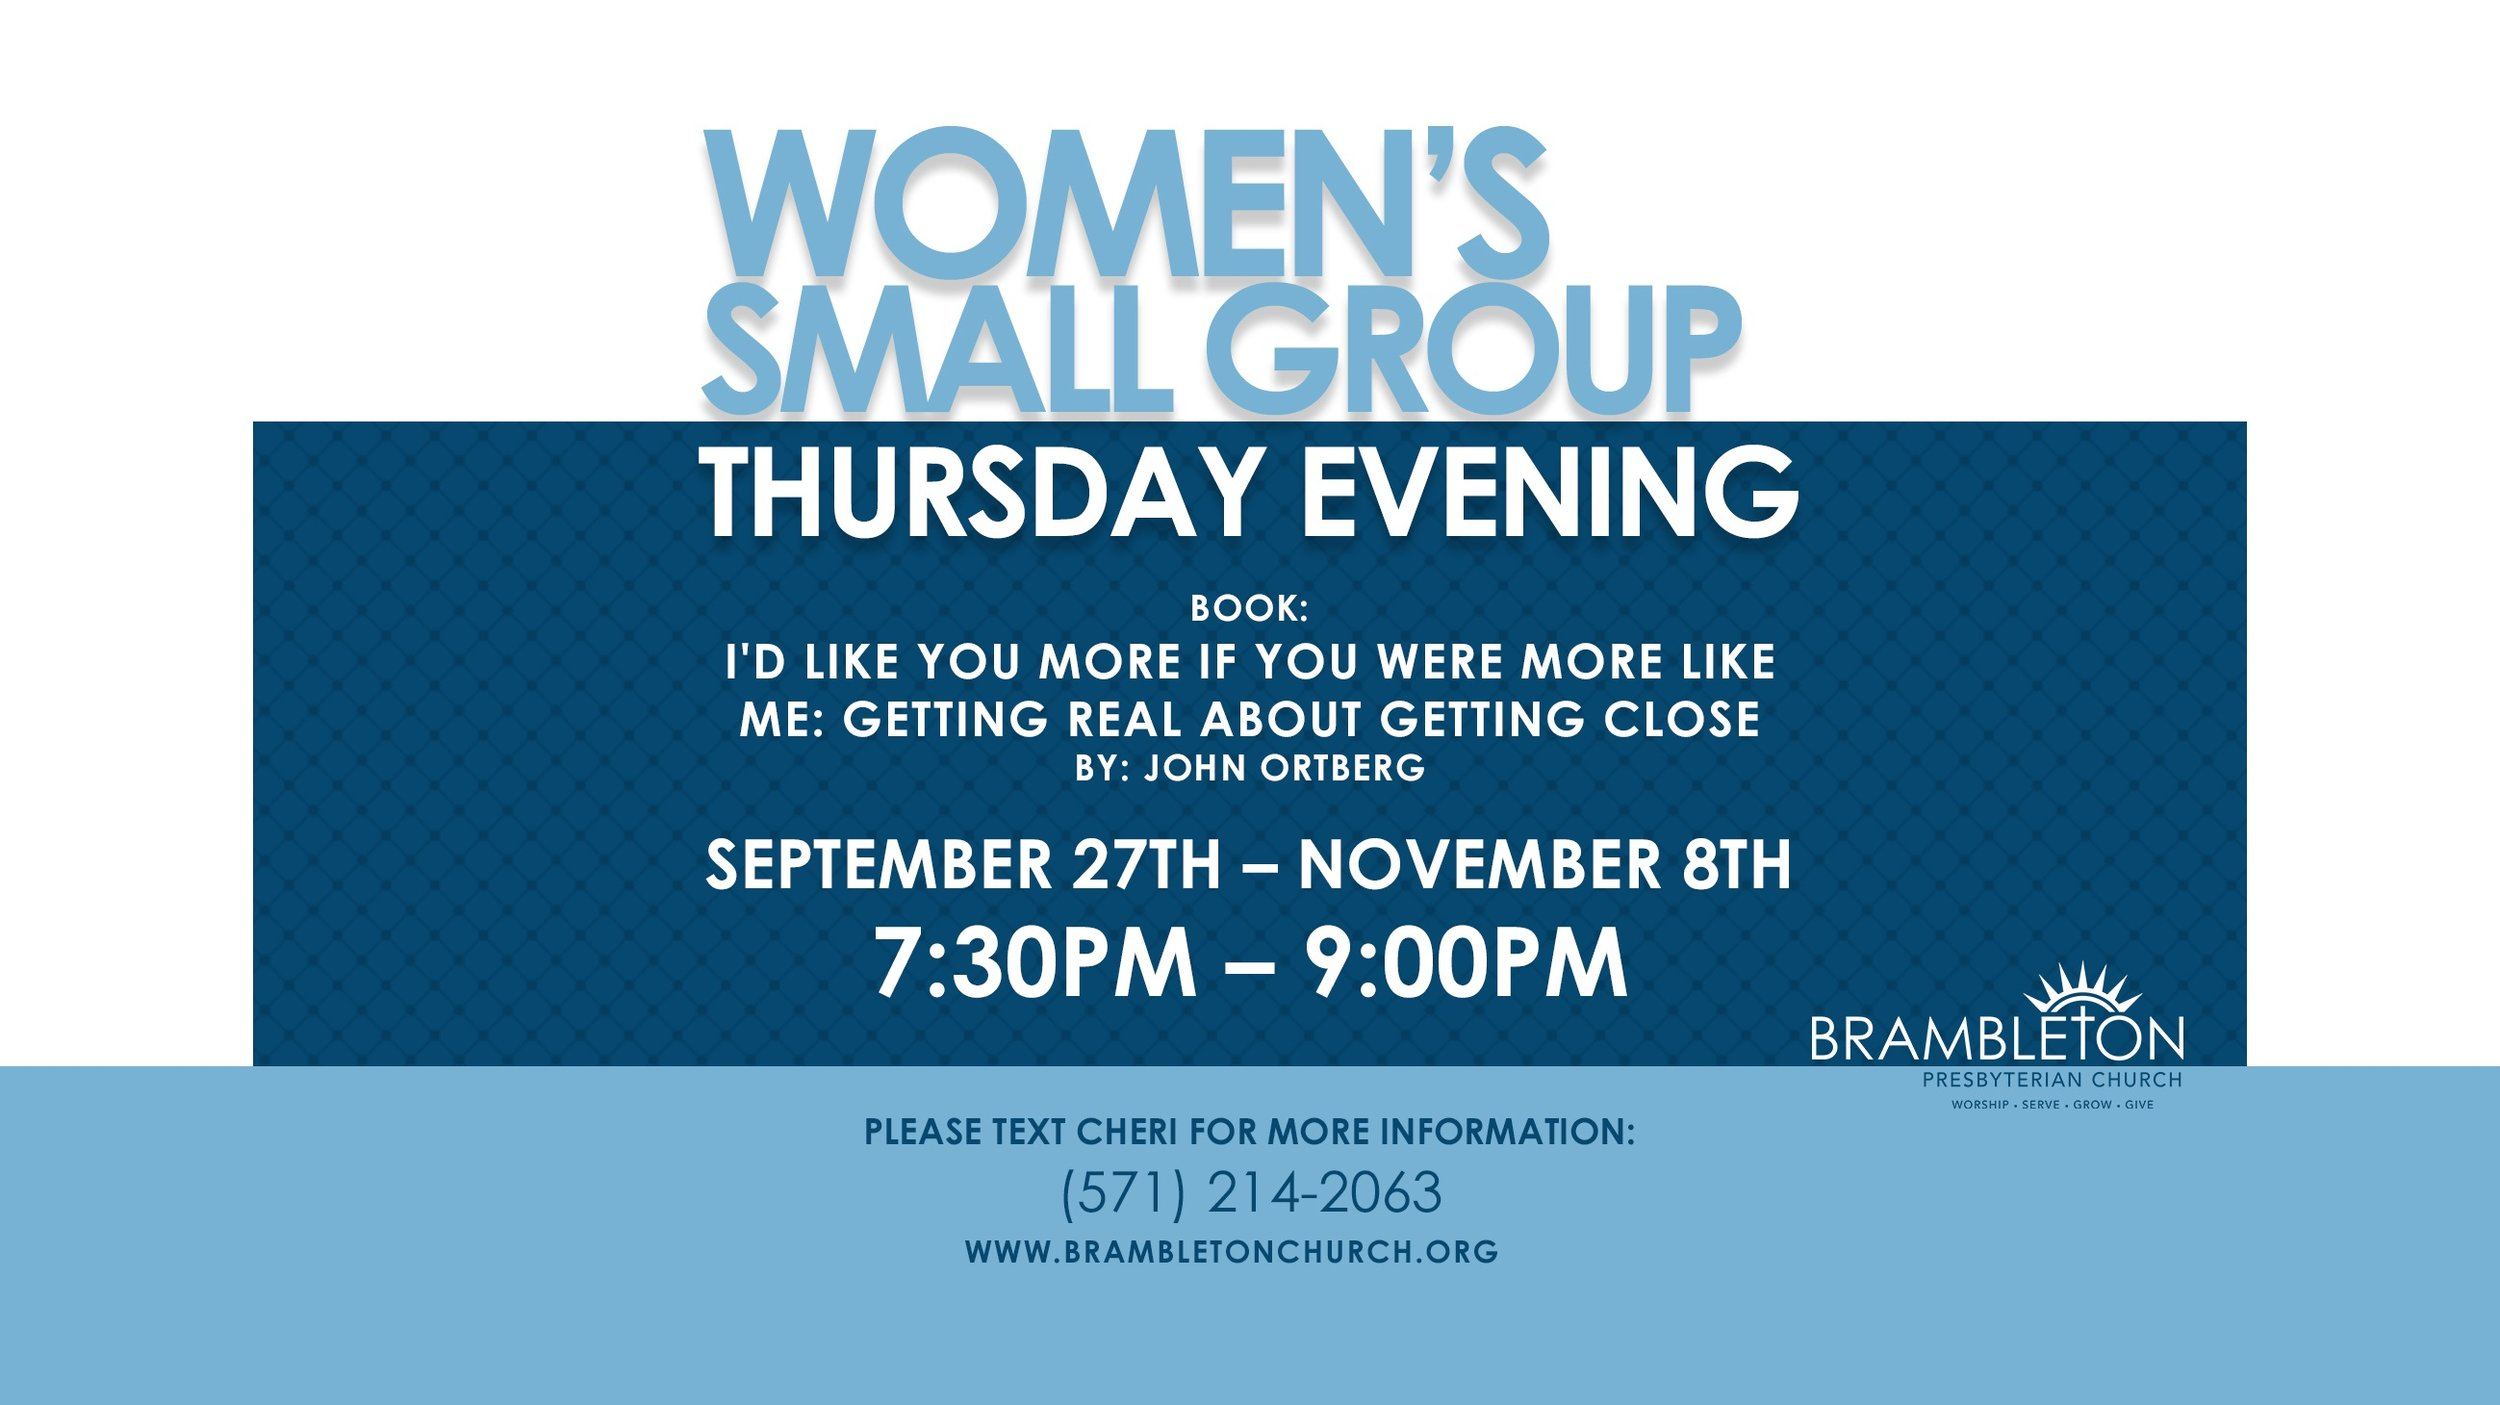 Womens Thursday Evening Samall Group.jpg